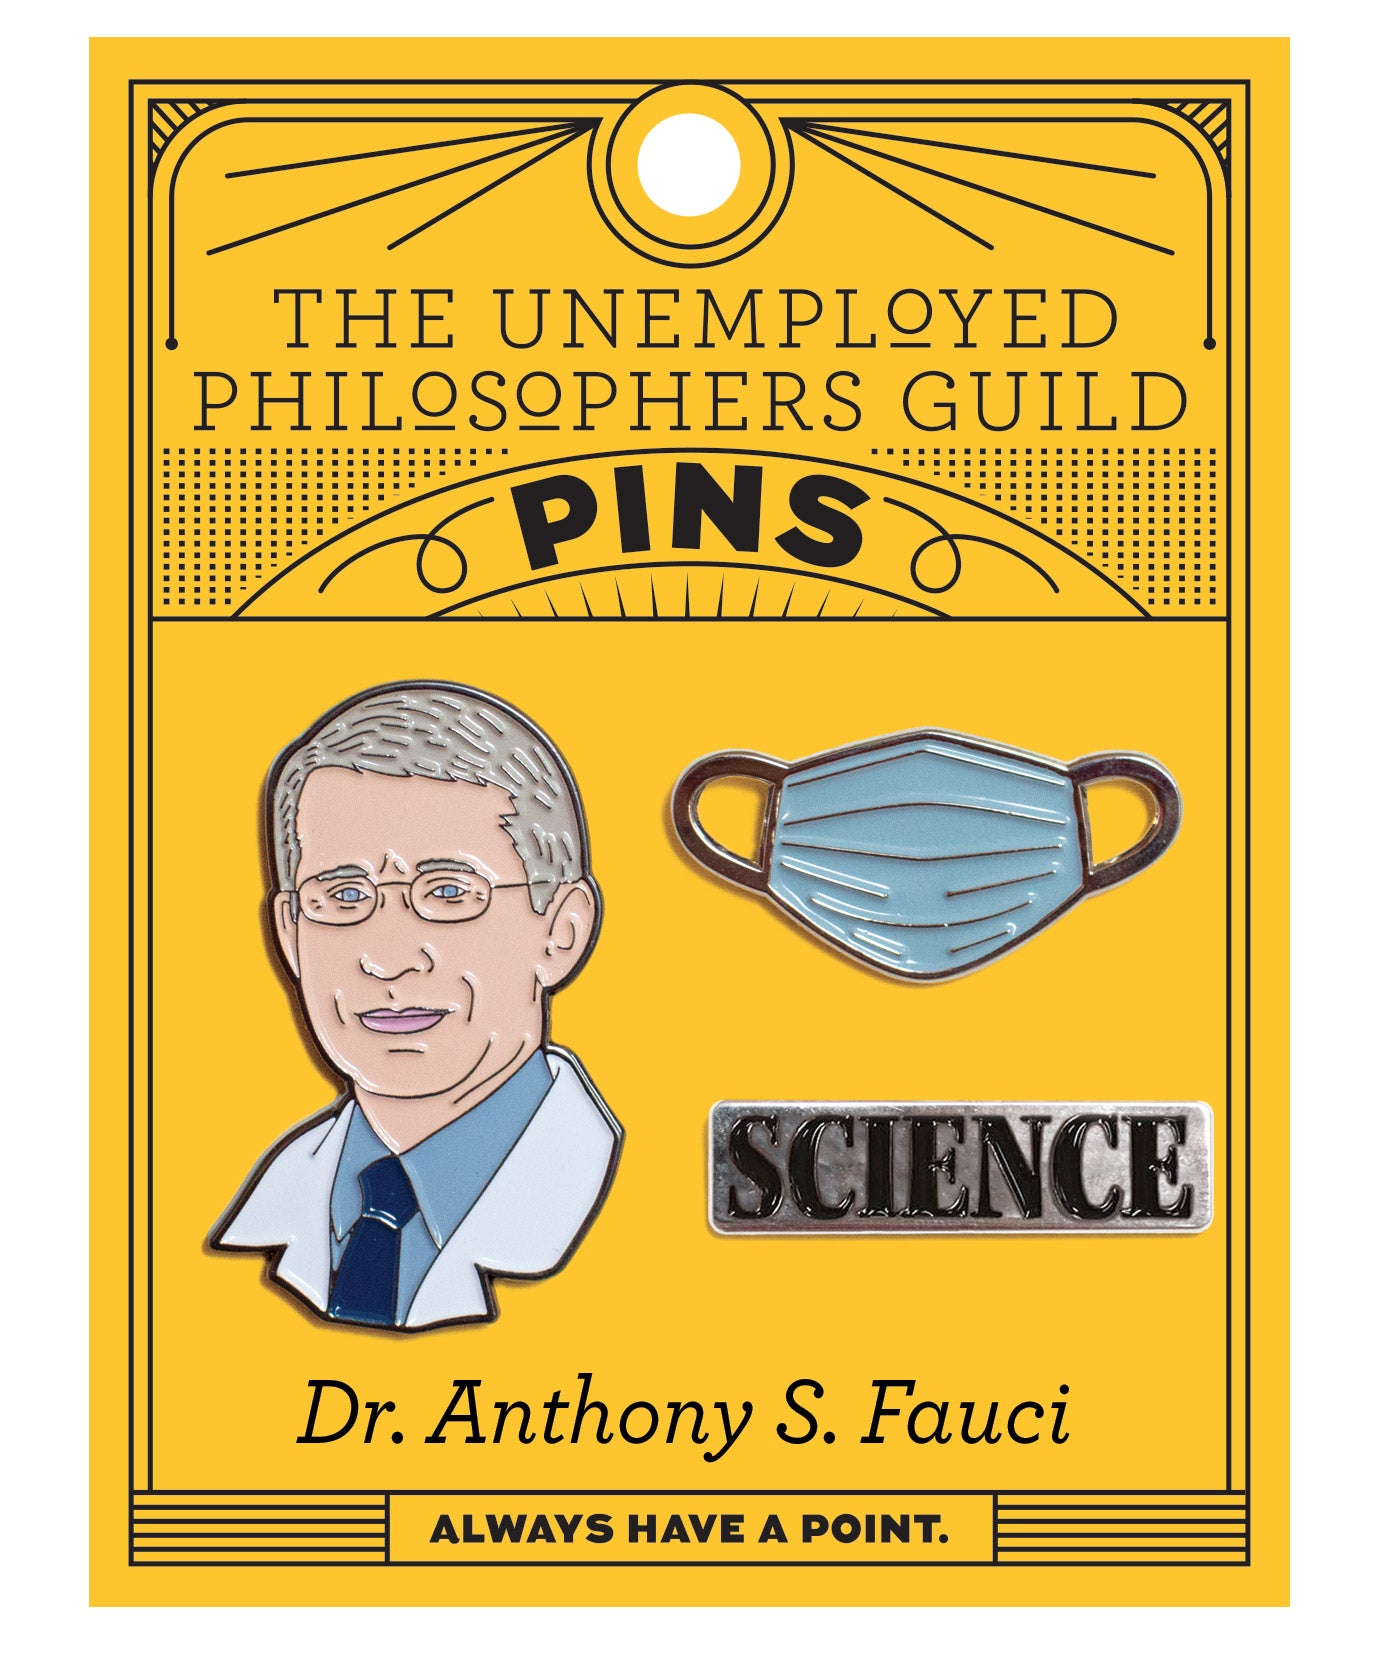 Dr. Anthony S. Fauci Pin Set